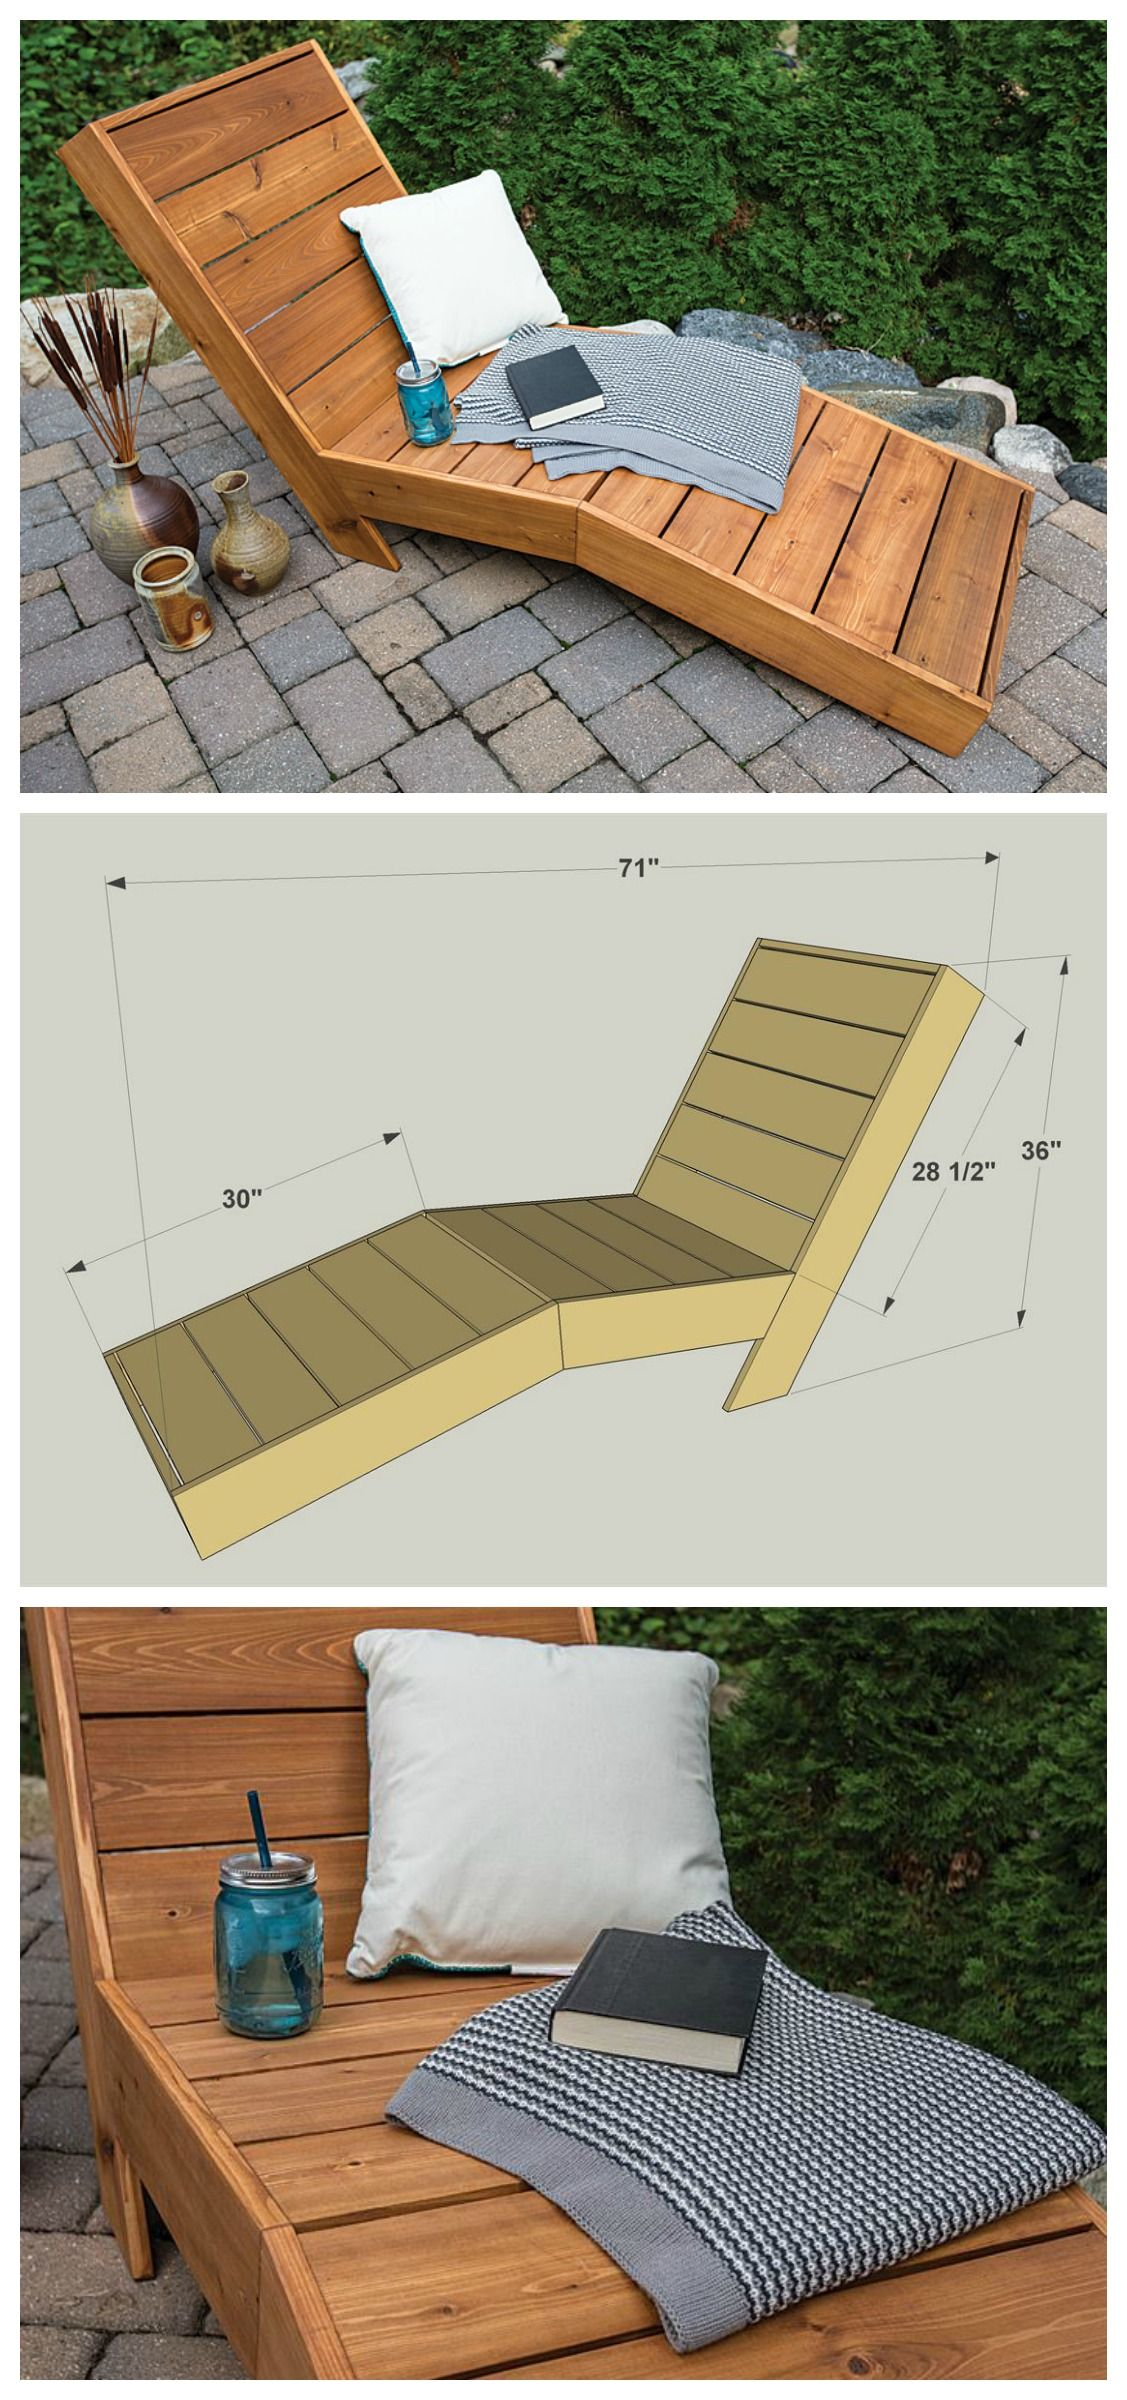 Diy outdoor chaise lounge free plans at buildsomething